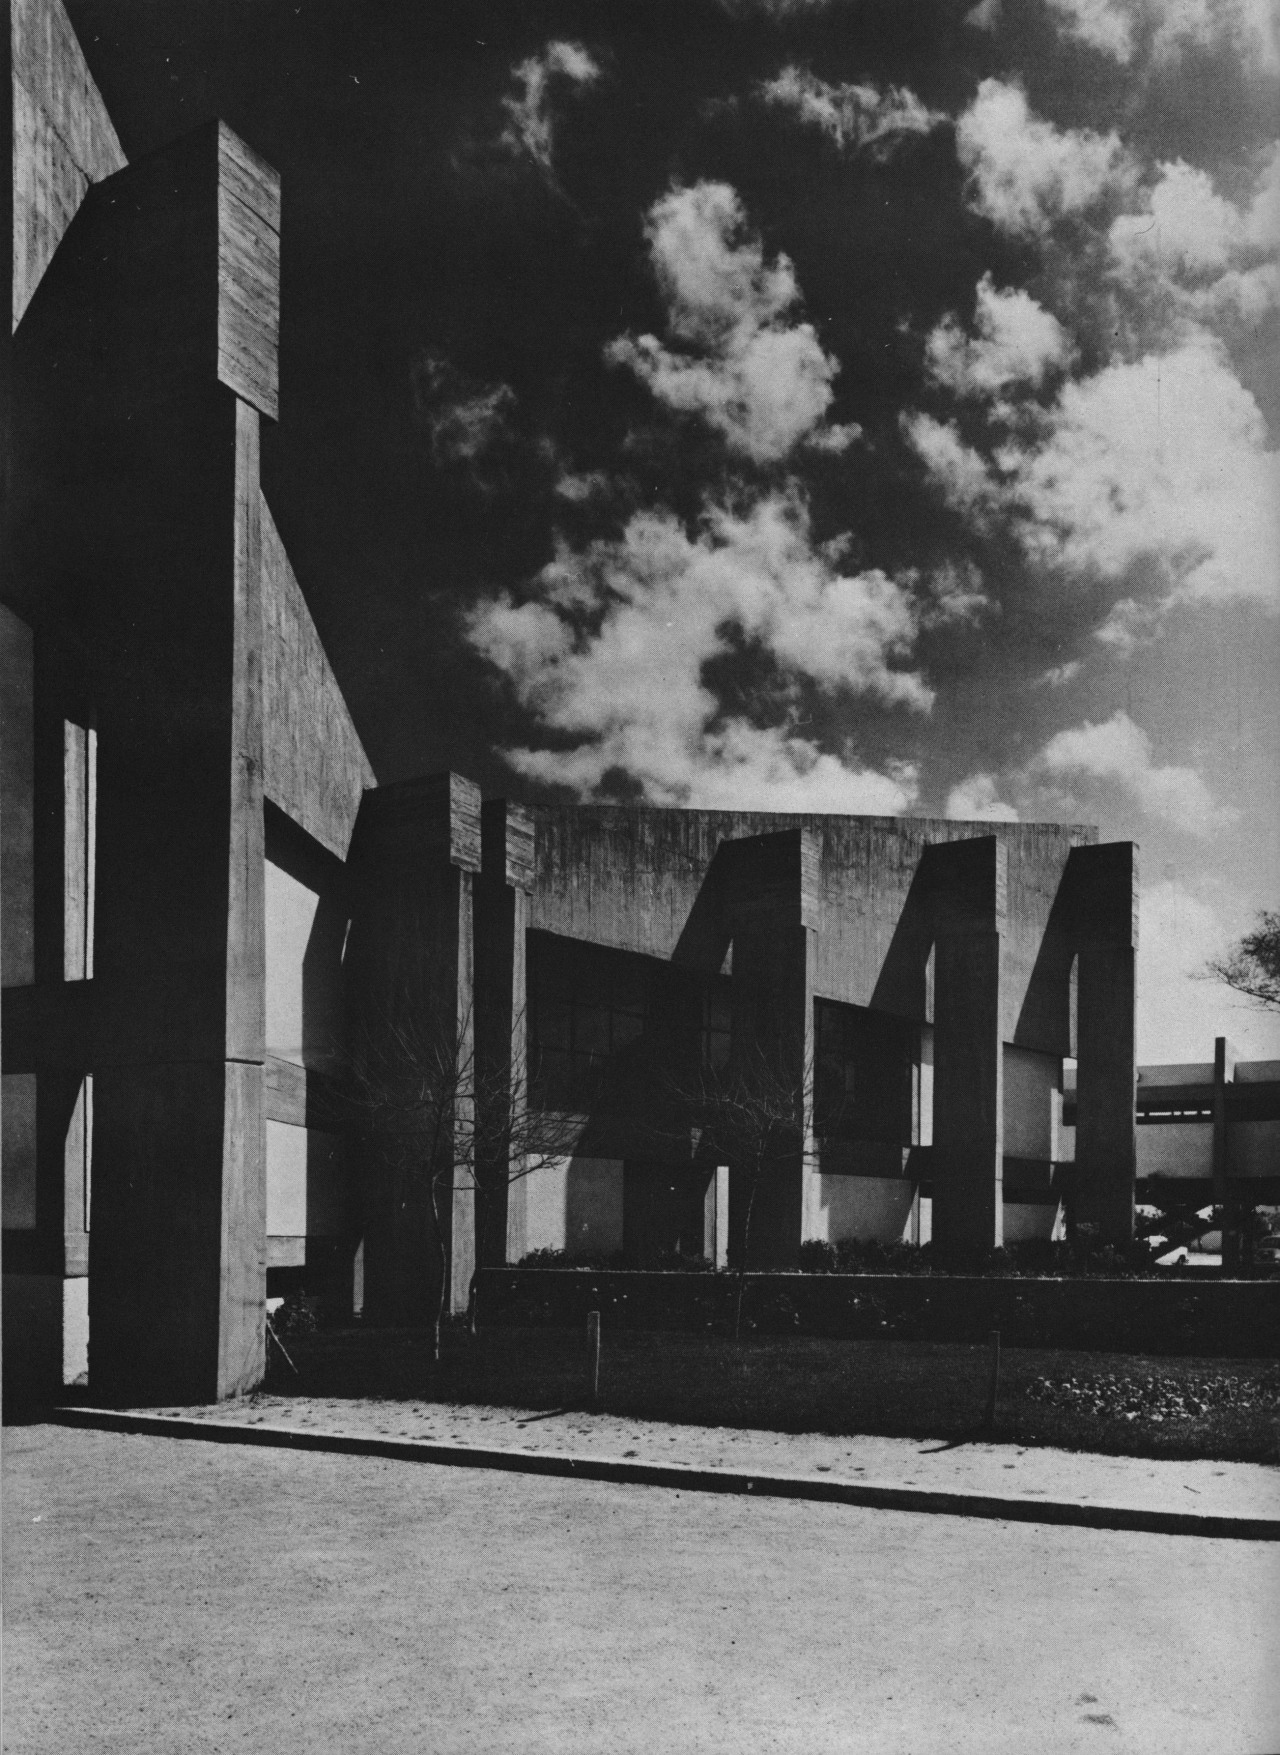 Civic Center, Rabat, Morocco, 1967 (Elie Azagury)